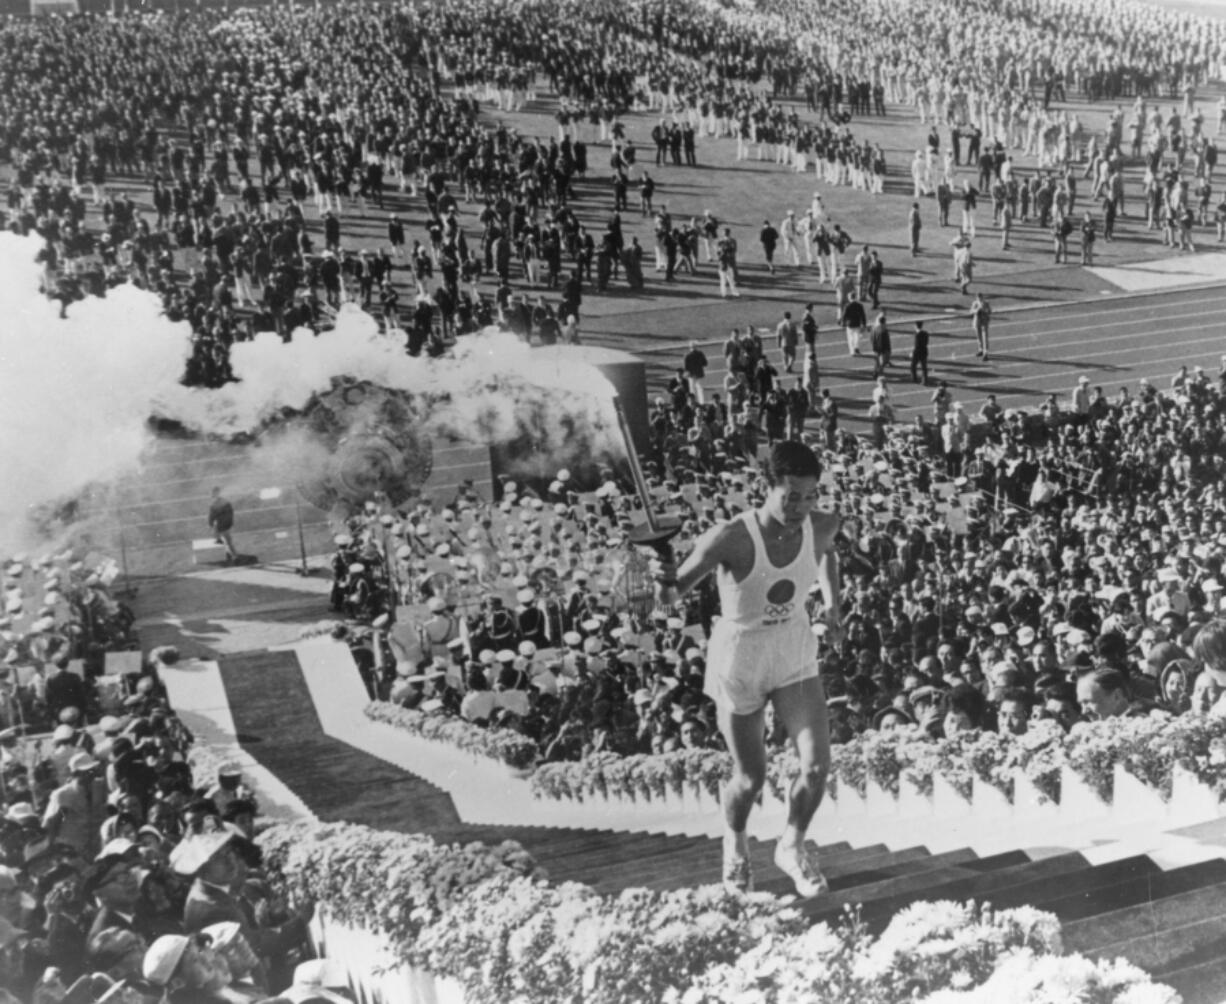 Yoshinori Sakai, born in Hiroshima on the day the first atomic bomb devastated the city, carries the torch up the stairs to light the cauldron during the opening ceremony for the 1964 Tokyo Summer Olympic Games.